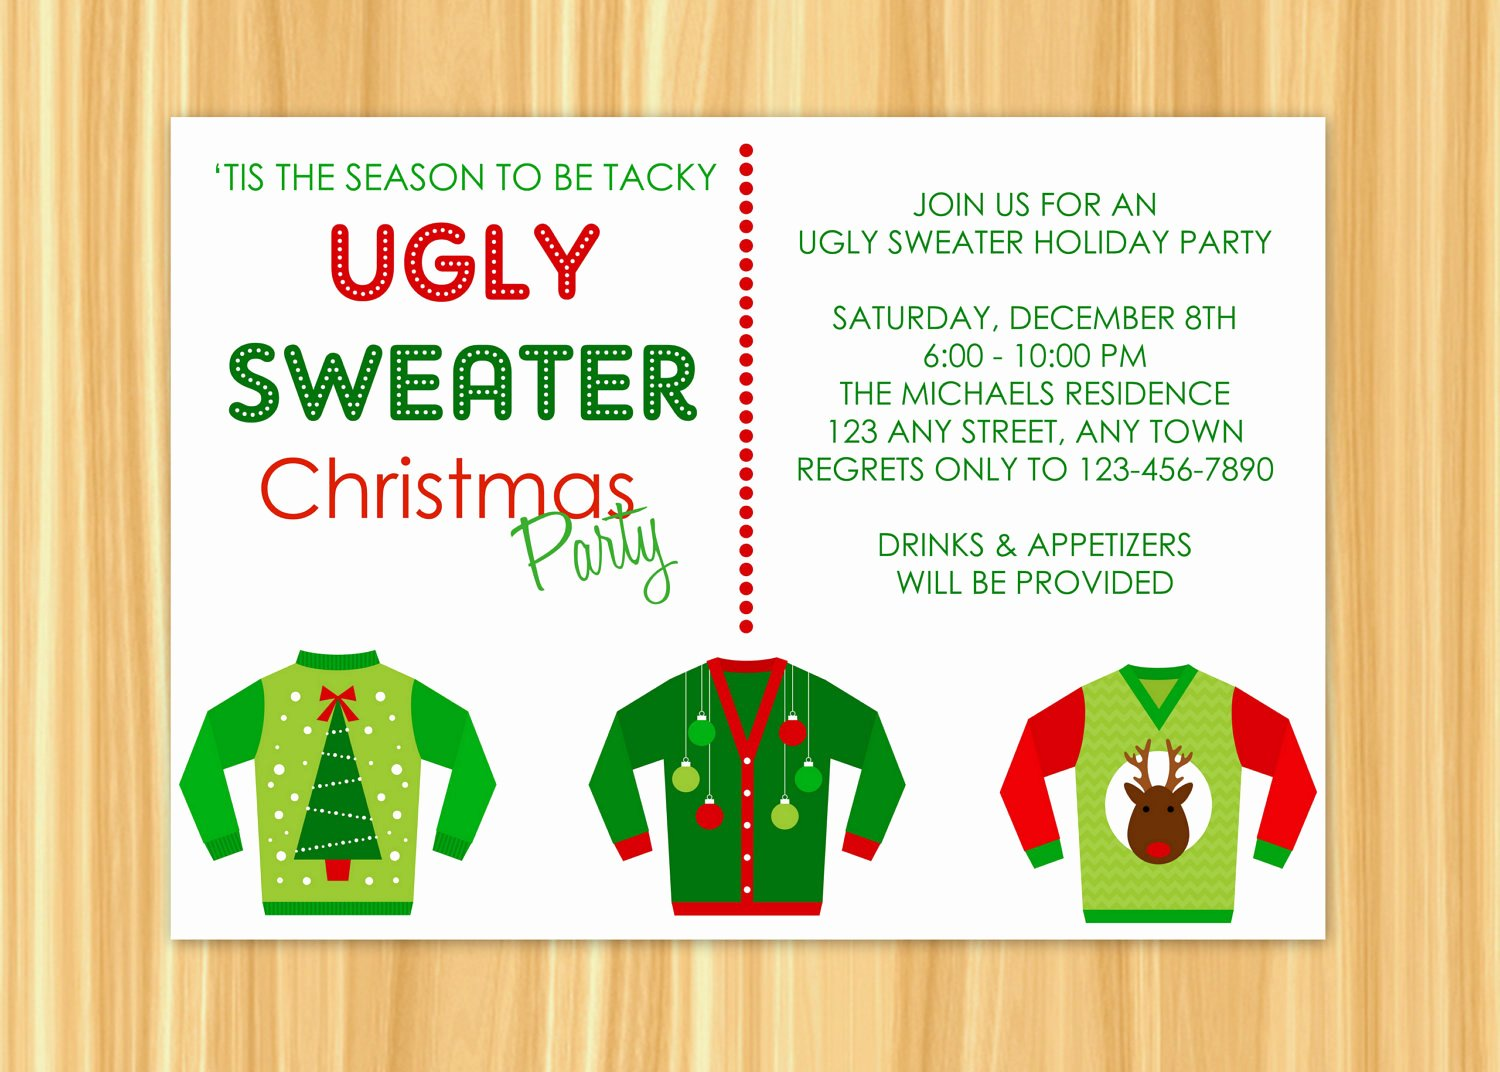 Ugly Sweater Invitation Template Free Unique Ugly Sweater Invitation Ugly Sweater Holiday Party